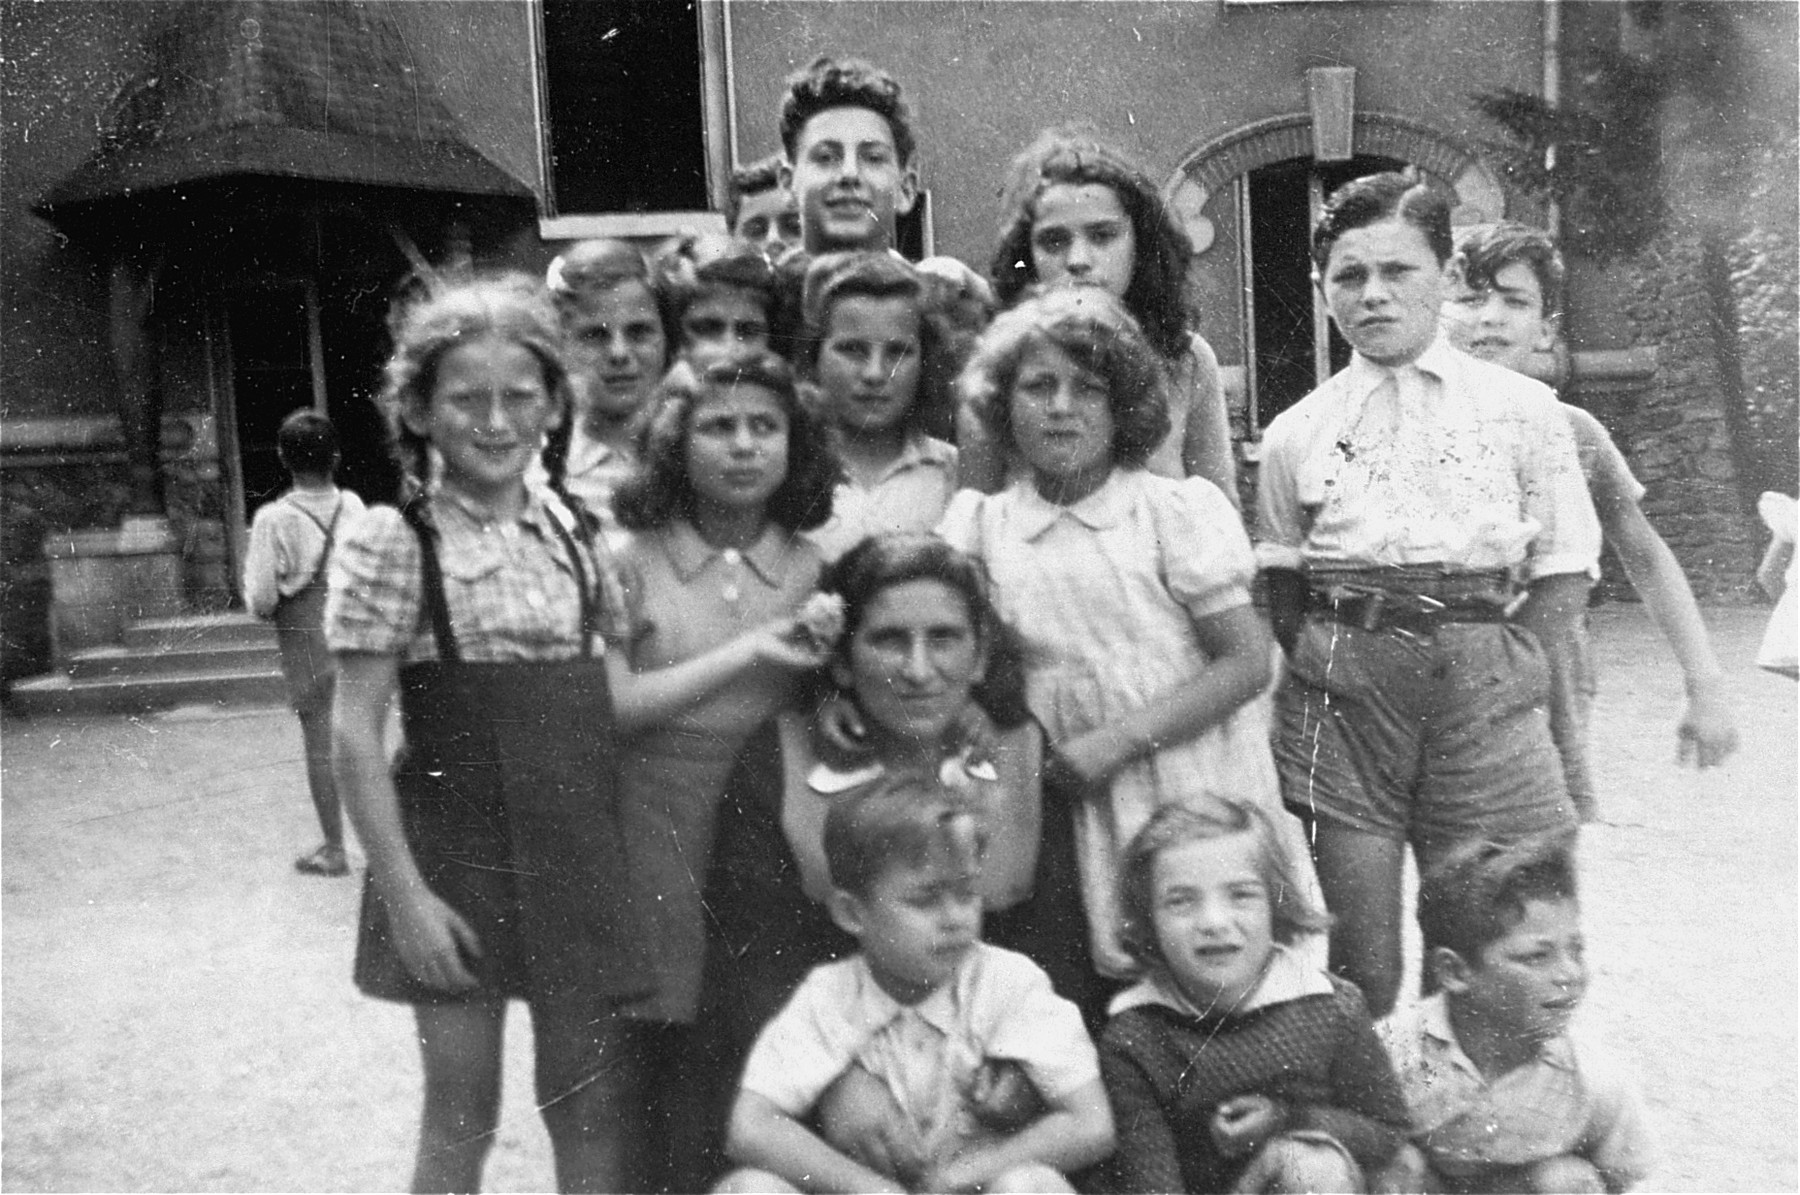 Group portrait of Jewish children in an OSE (Oeuvre de Secours aux Enfants) home in Draveil, France.    Hemine Katz, who took care of these children, is pictured in the middle of the group.  Felice Zimmern is pictured crouching in the front row between two boys.